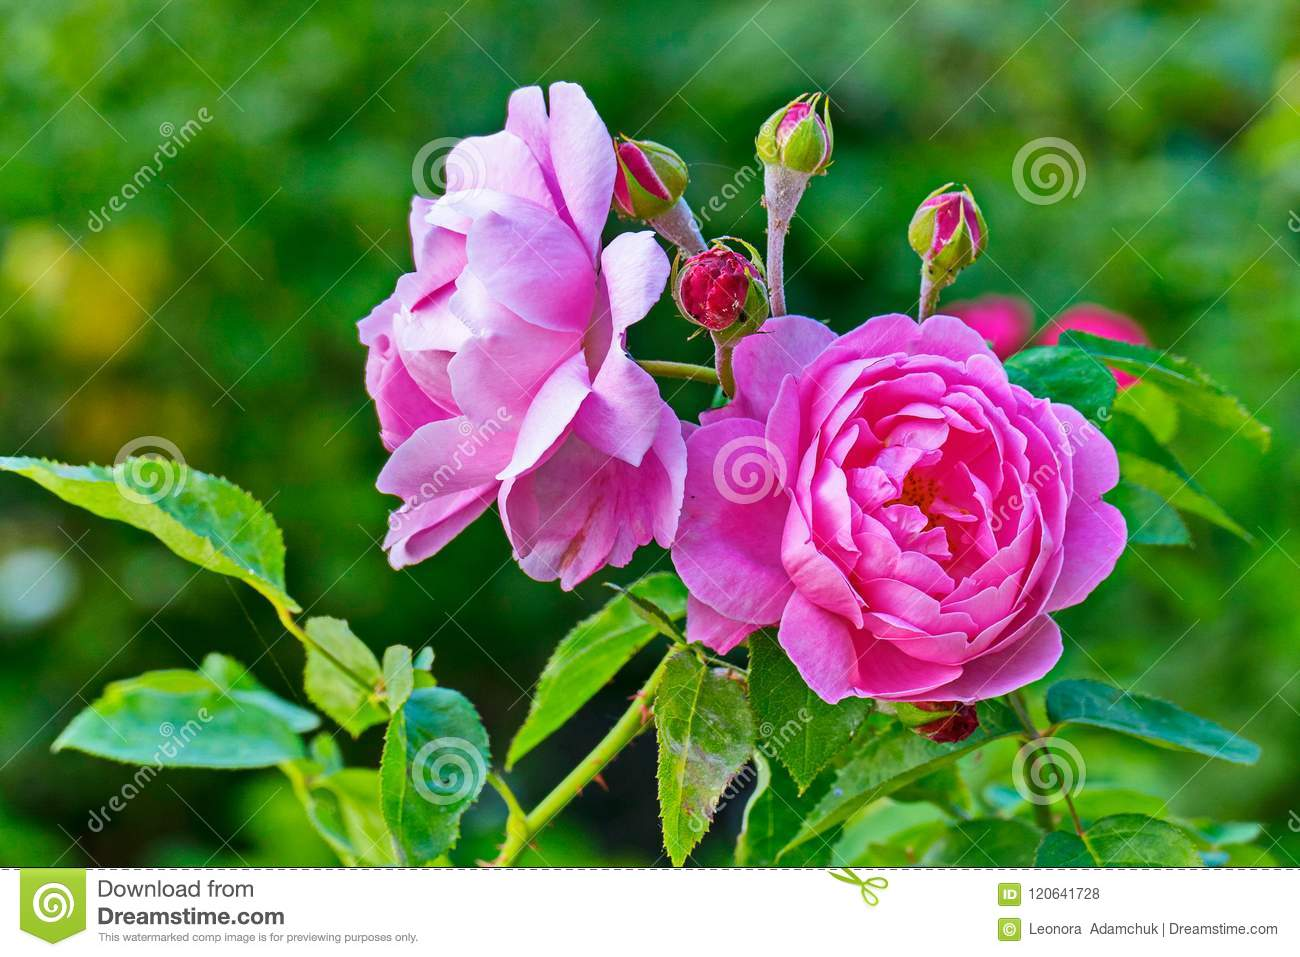 A beautiful rose with beautiful tender petals and unblown small buds a beautiful rose with beautiful tender petals and unblown small buds growing on a thin izmirmasajfo